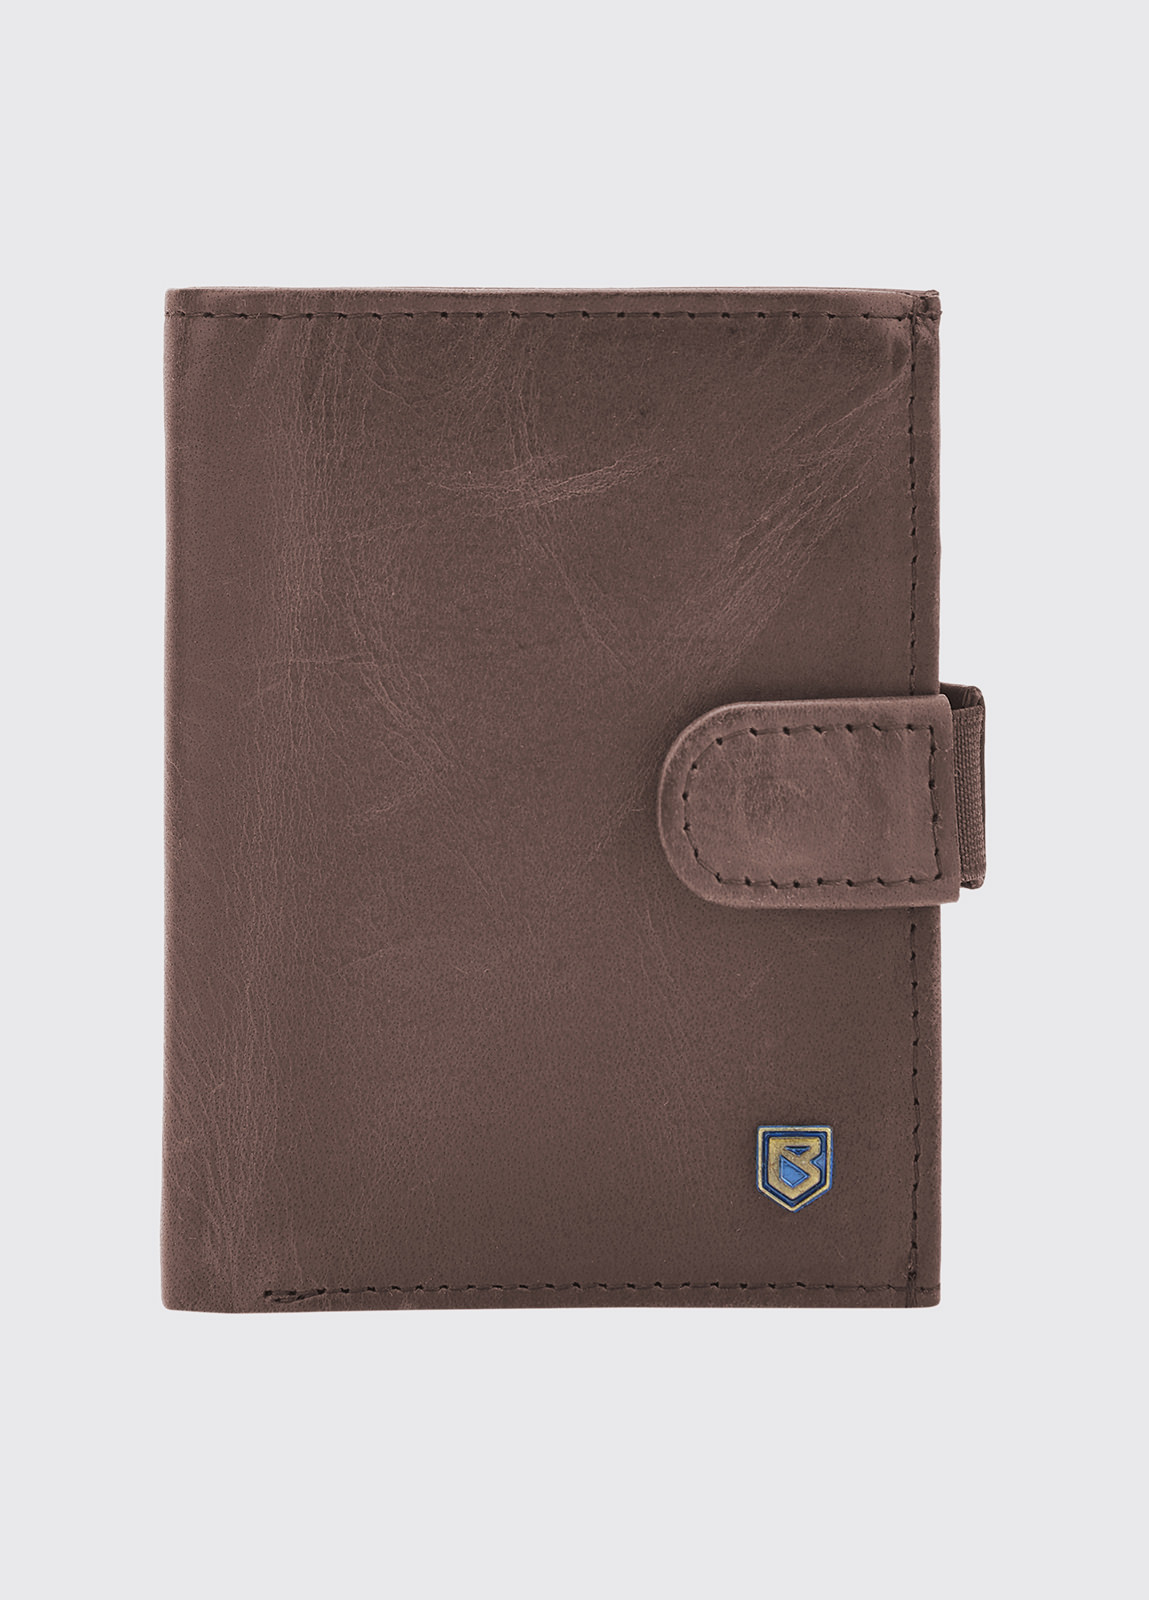 Thurles Leather Wallet - Old Rum